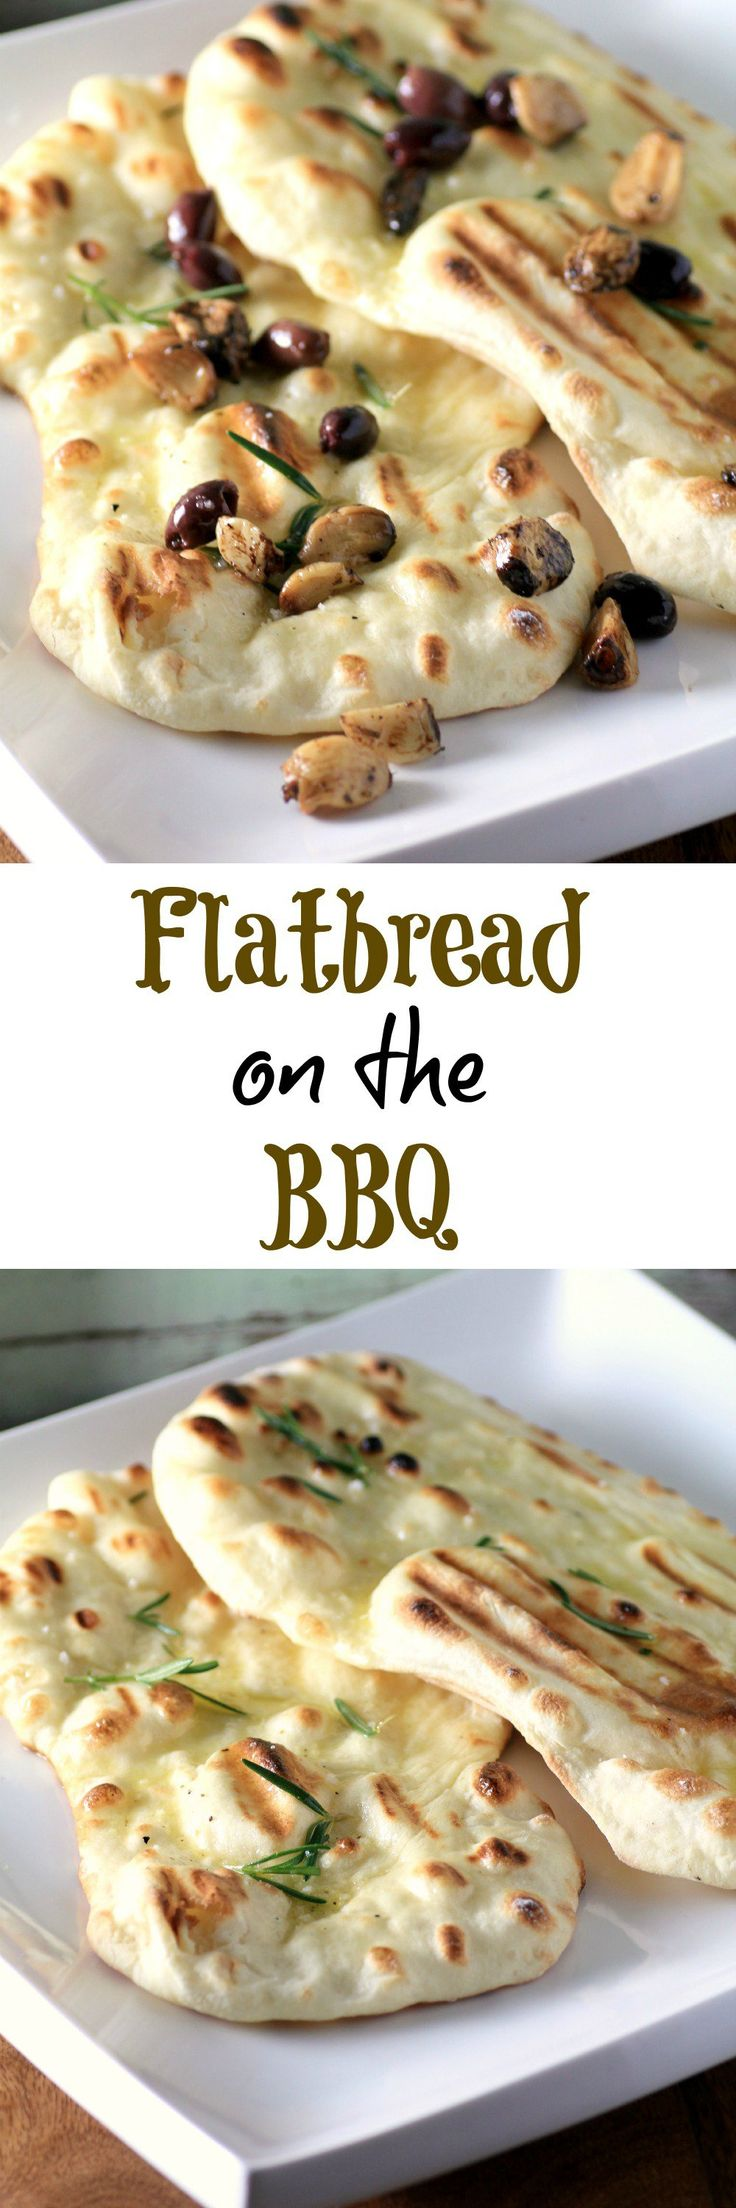 Flatbread on the BBQ #WeekdaySupper, so easy and your family will love you for it!